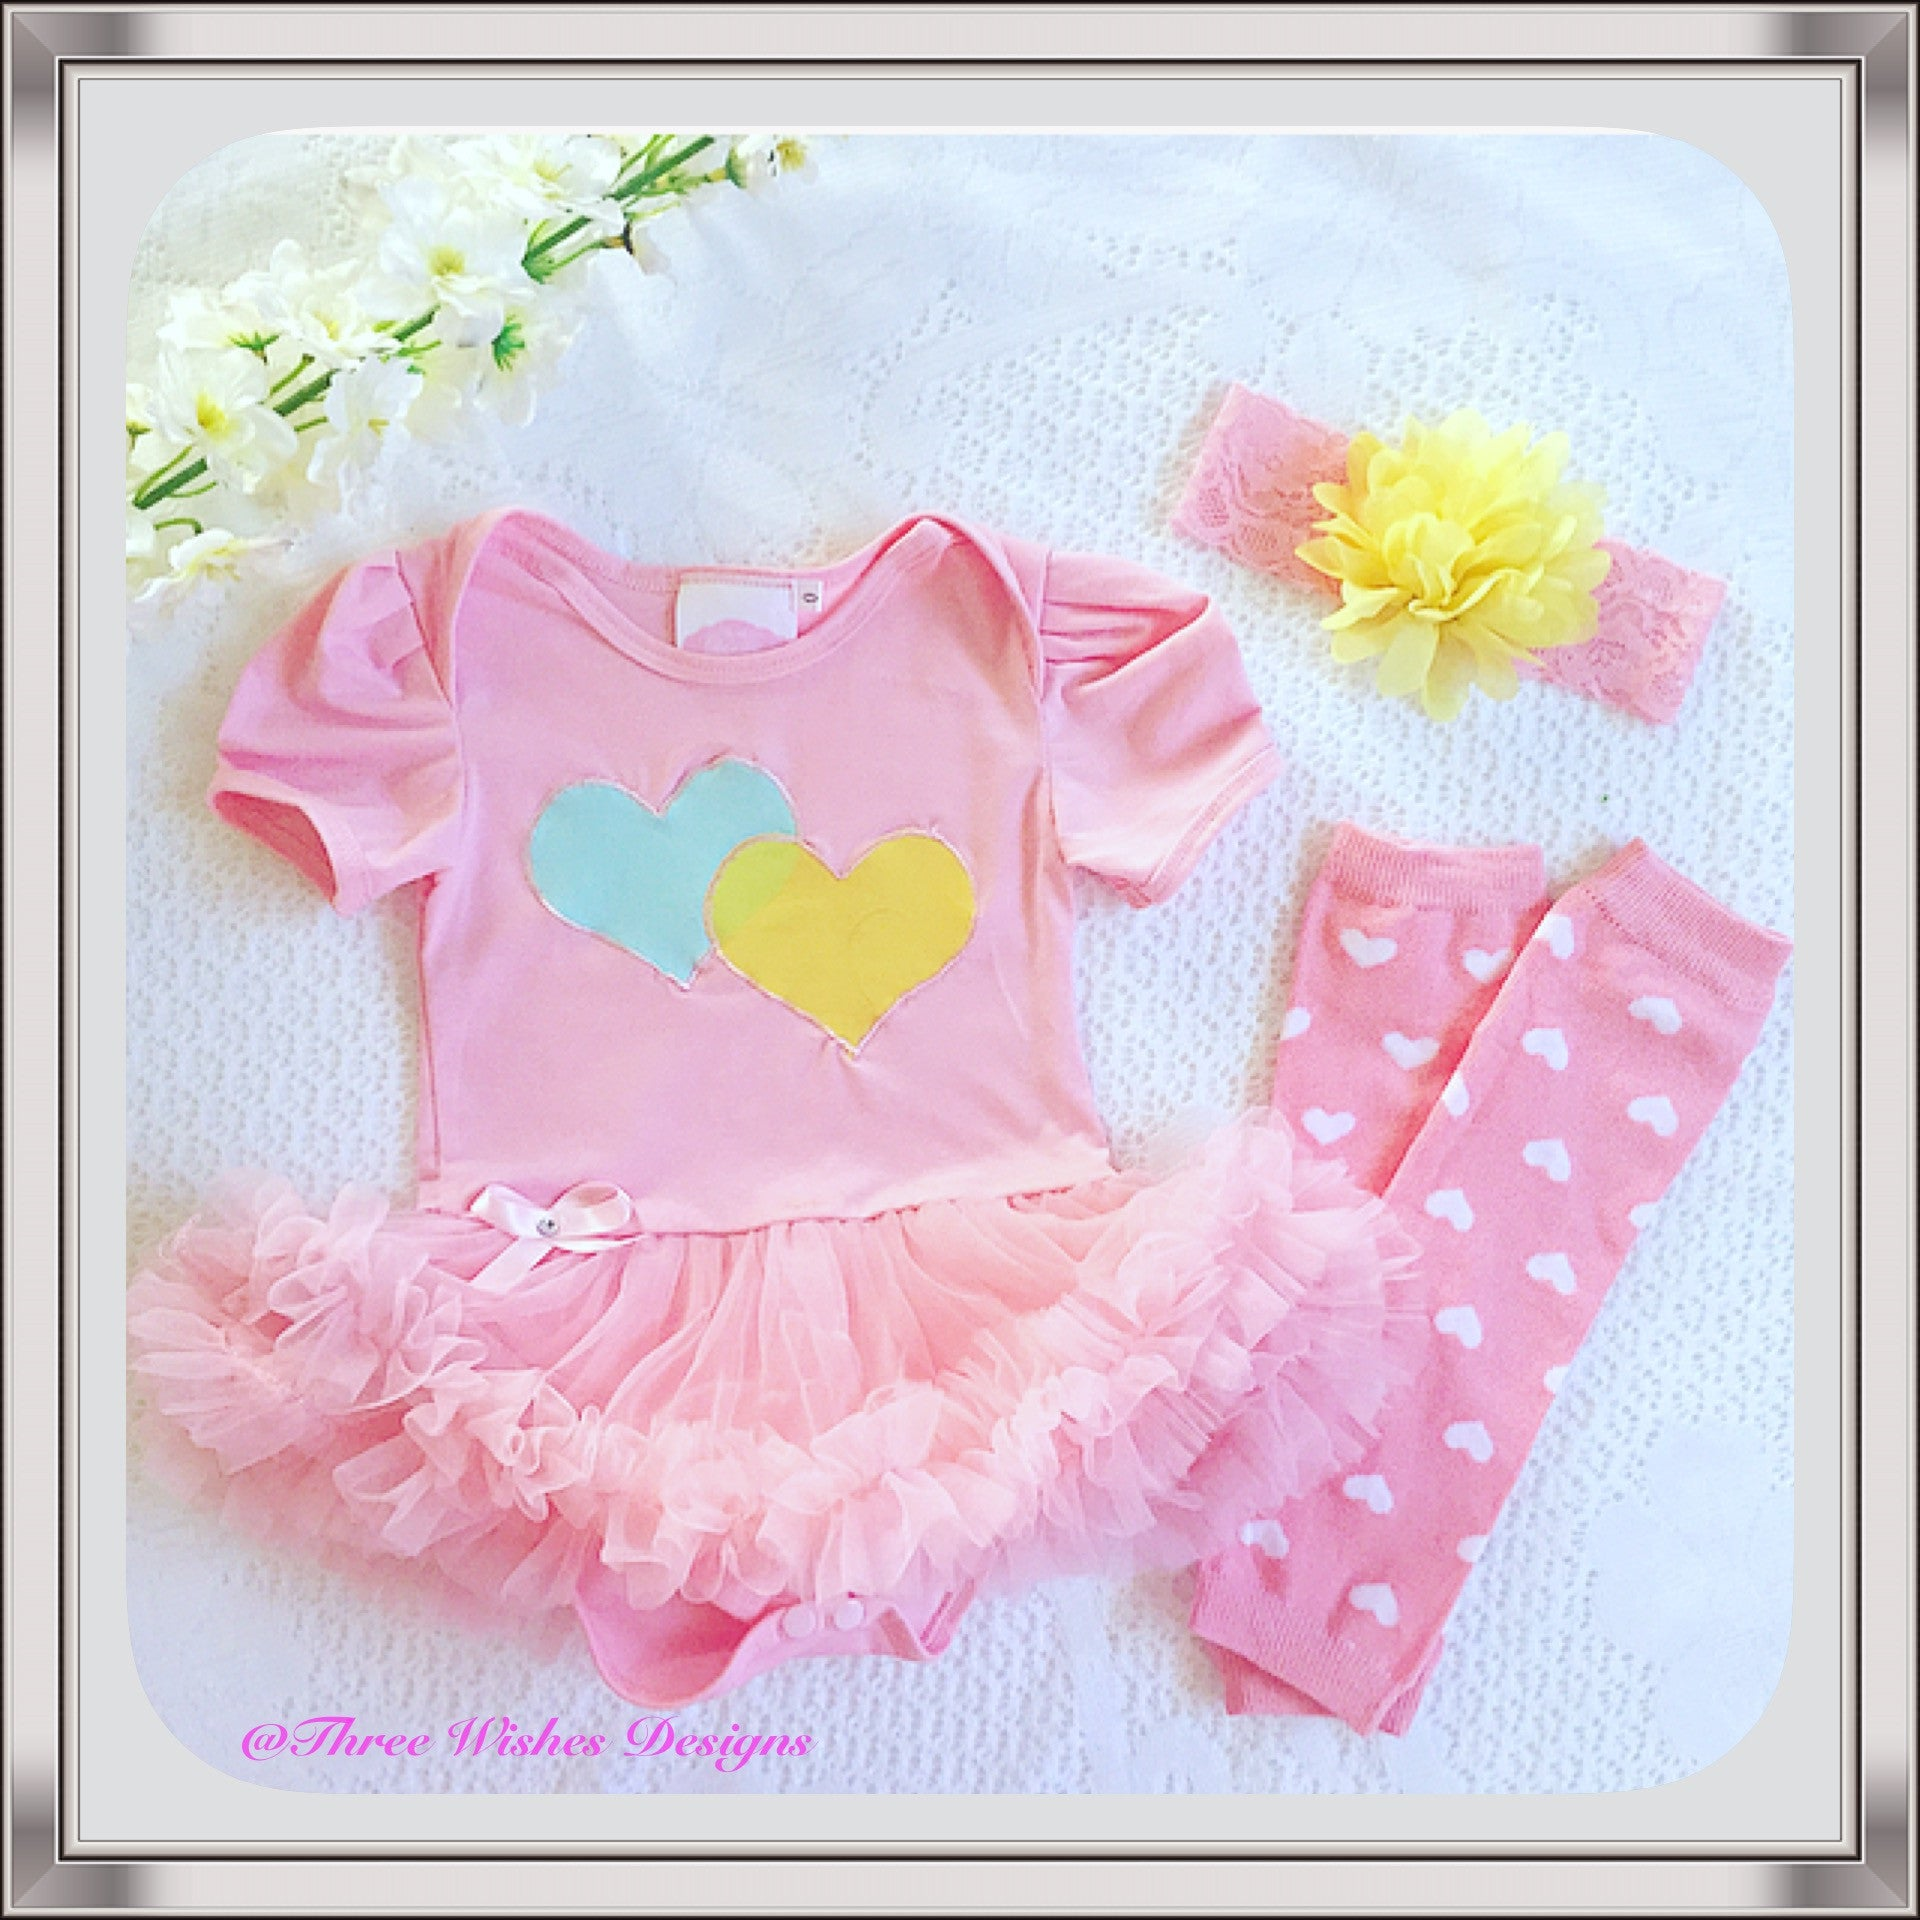 Sweetheart 3pcs Valentine Set